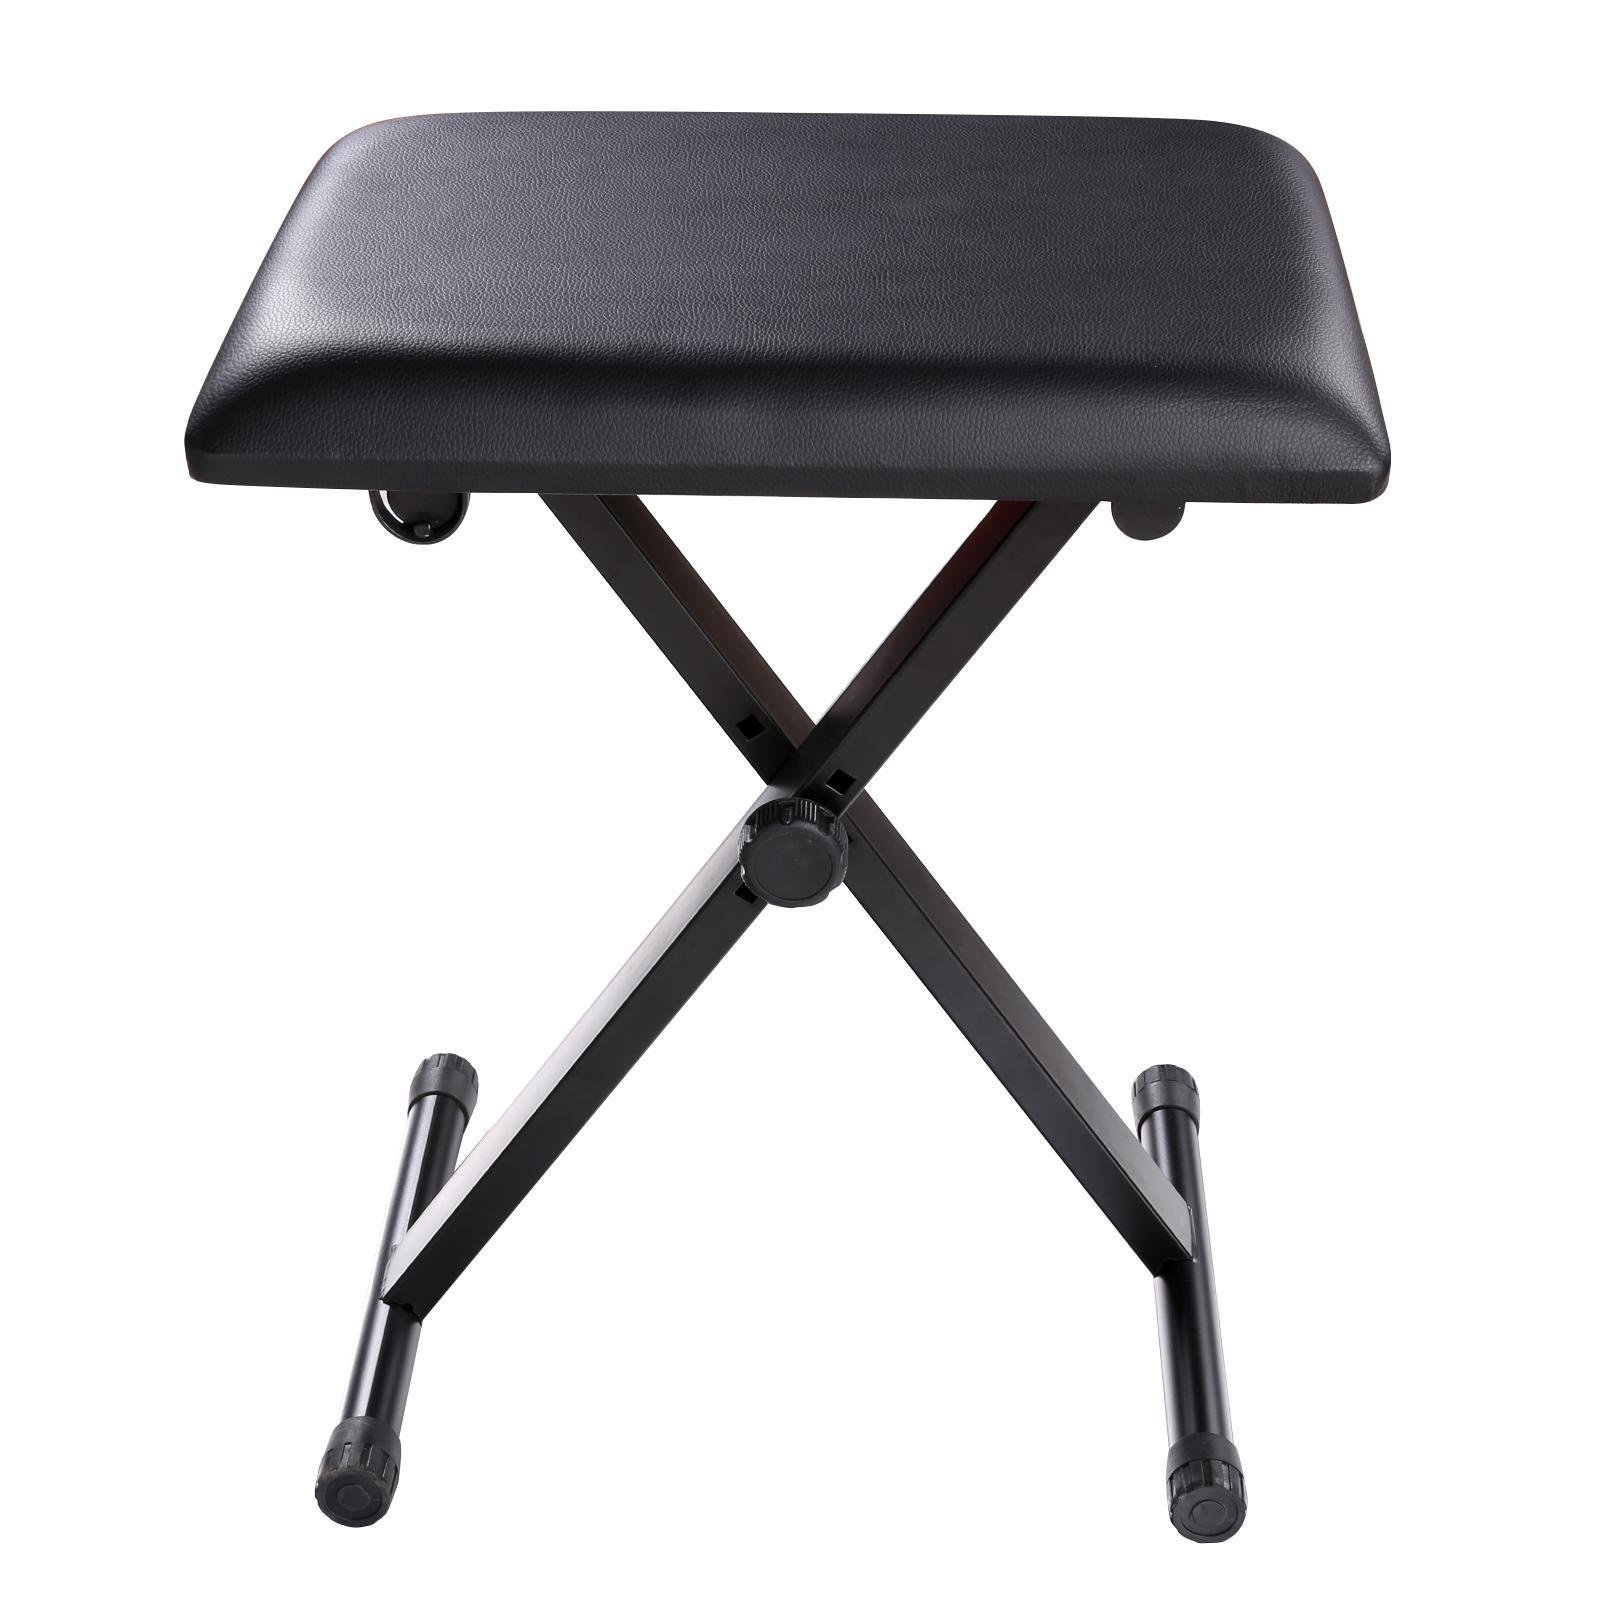 Dtemple Piano Bench Padded Keyboard Bench X-Style Adjustable Bench Folding Stool Piano Chair